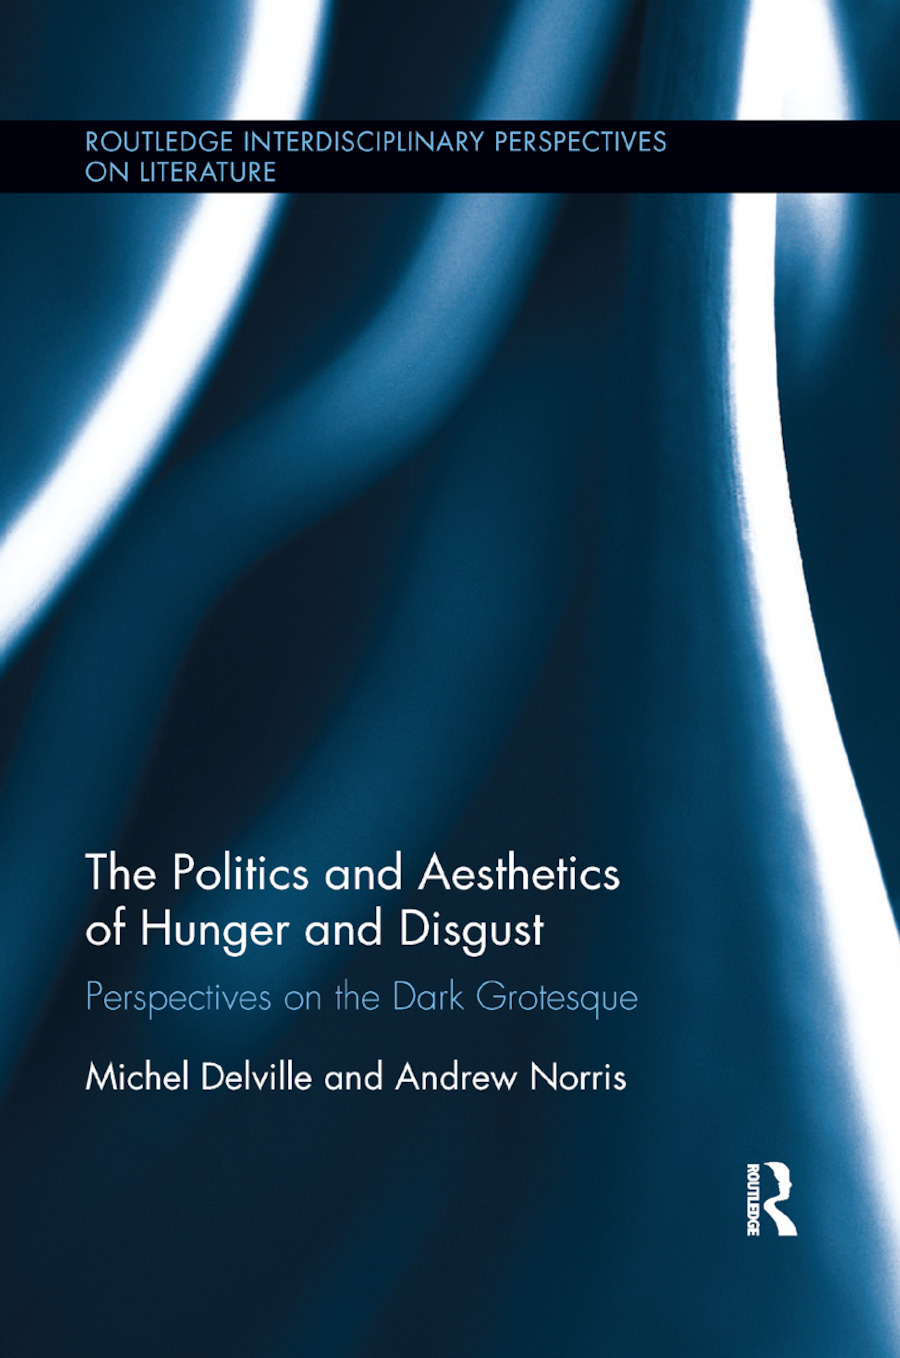 The Politics and Aesthetics of Hunger and Disgust